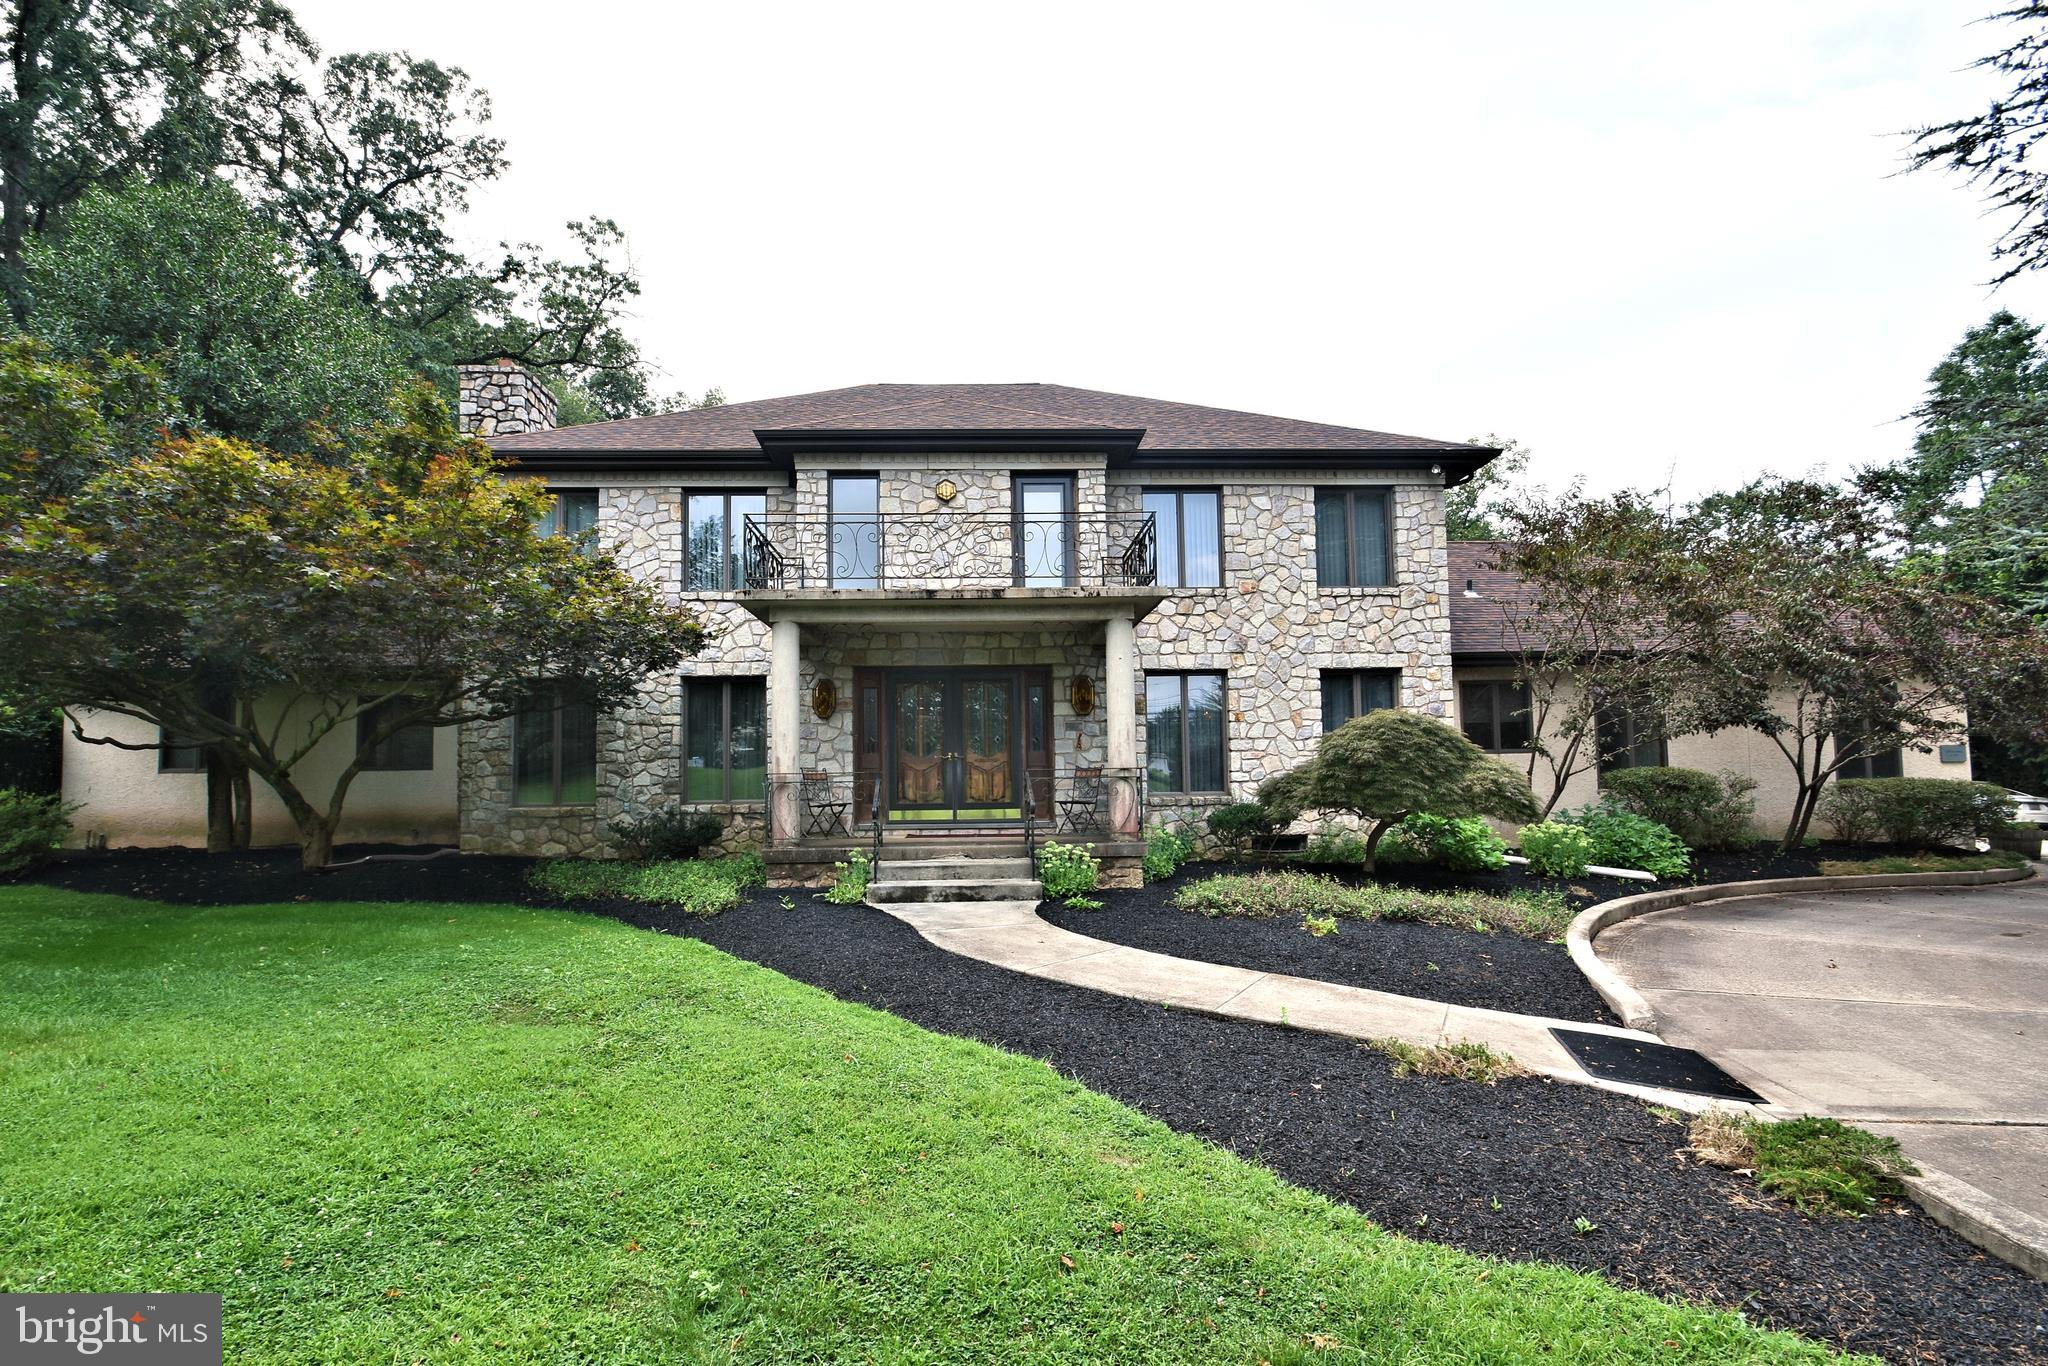 1153 W COUNTY LINE ROAD, CHALFONT, PA 18914